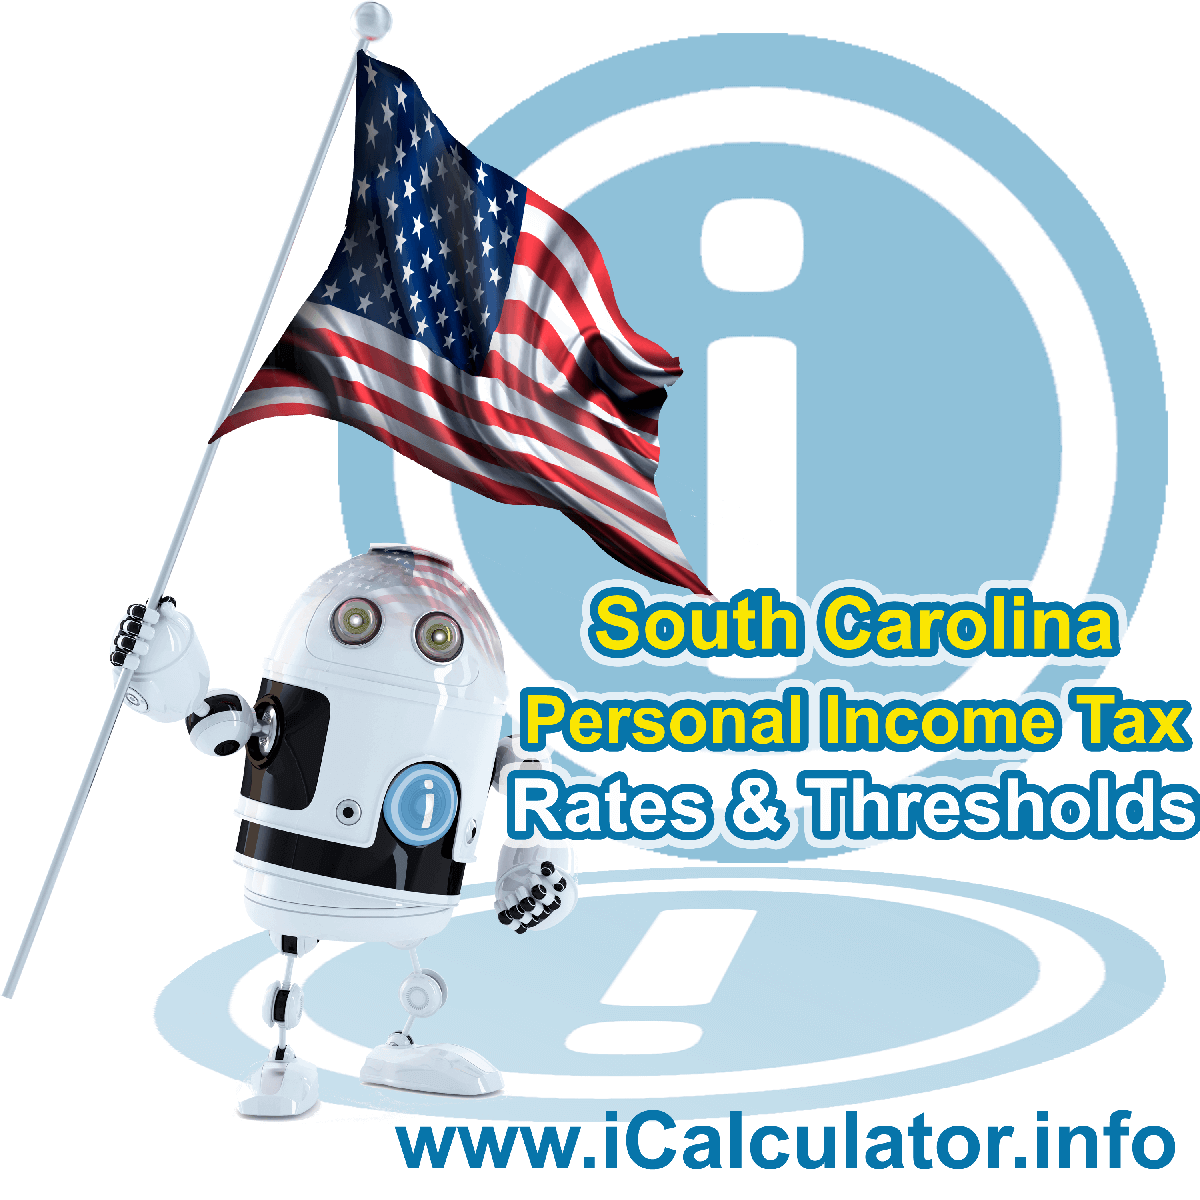 South Carolina State Tax Tables 2016. This image displays details of the South Carolina State Tax Tables for the 2016 tax return year which is provided in support of the 2016 US Tax Calculator